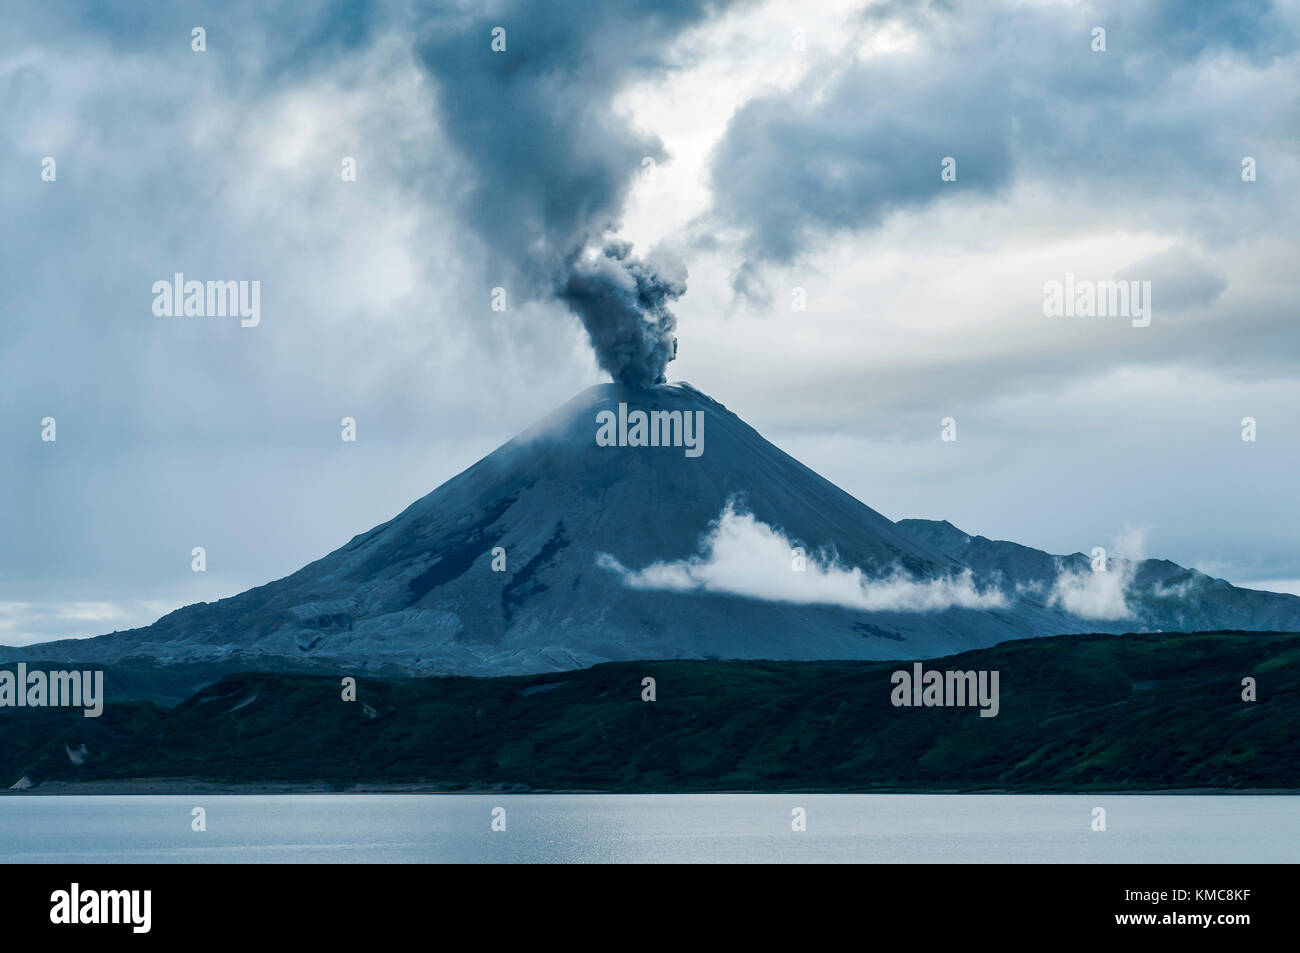 Active volcano throwing ashes on the Russian peninsula of Kamchatka - Stock Image